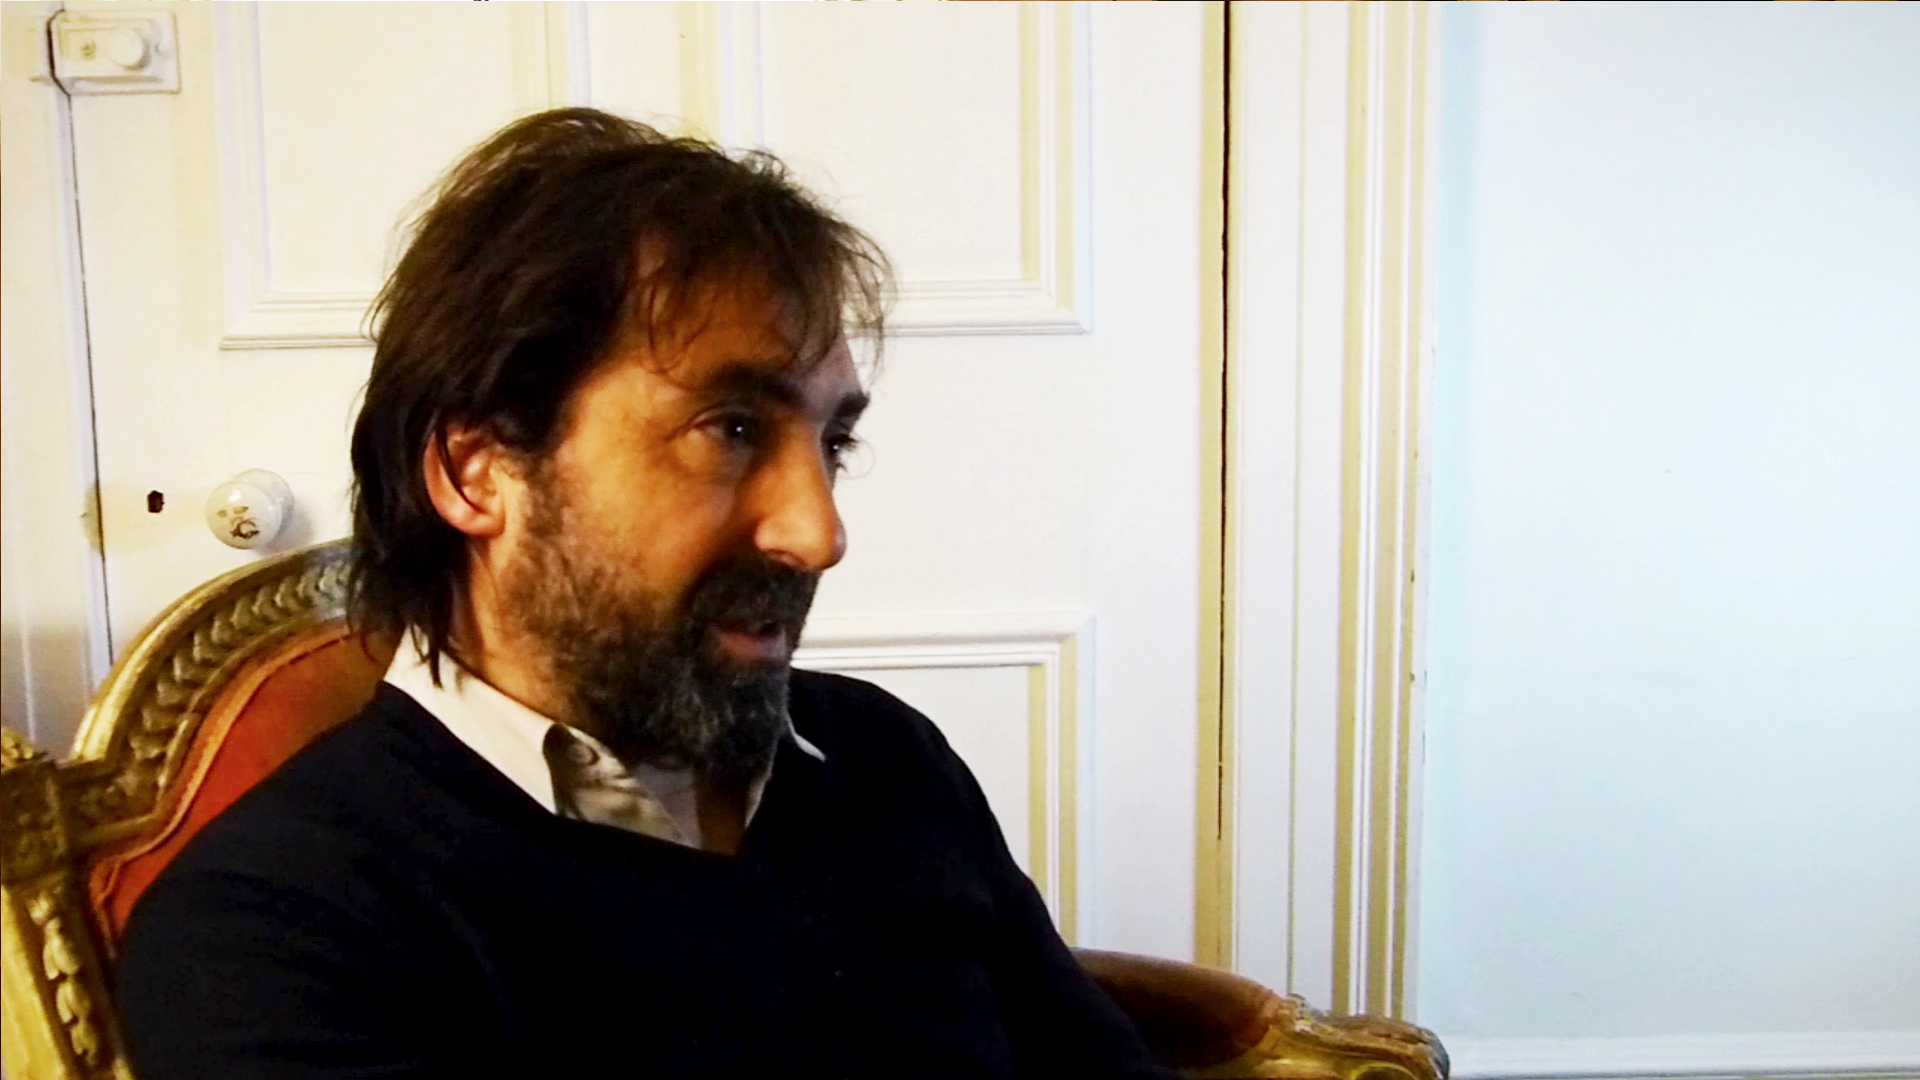 Interview with Stefano Mordini Pericle the black director